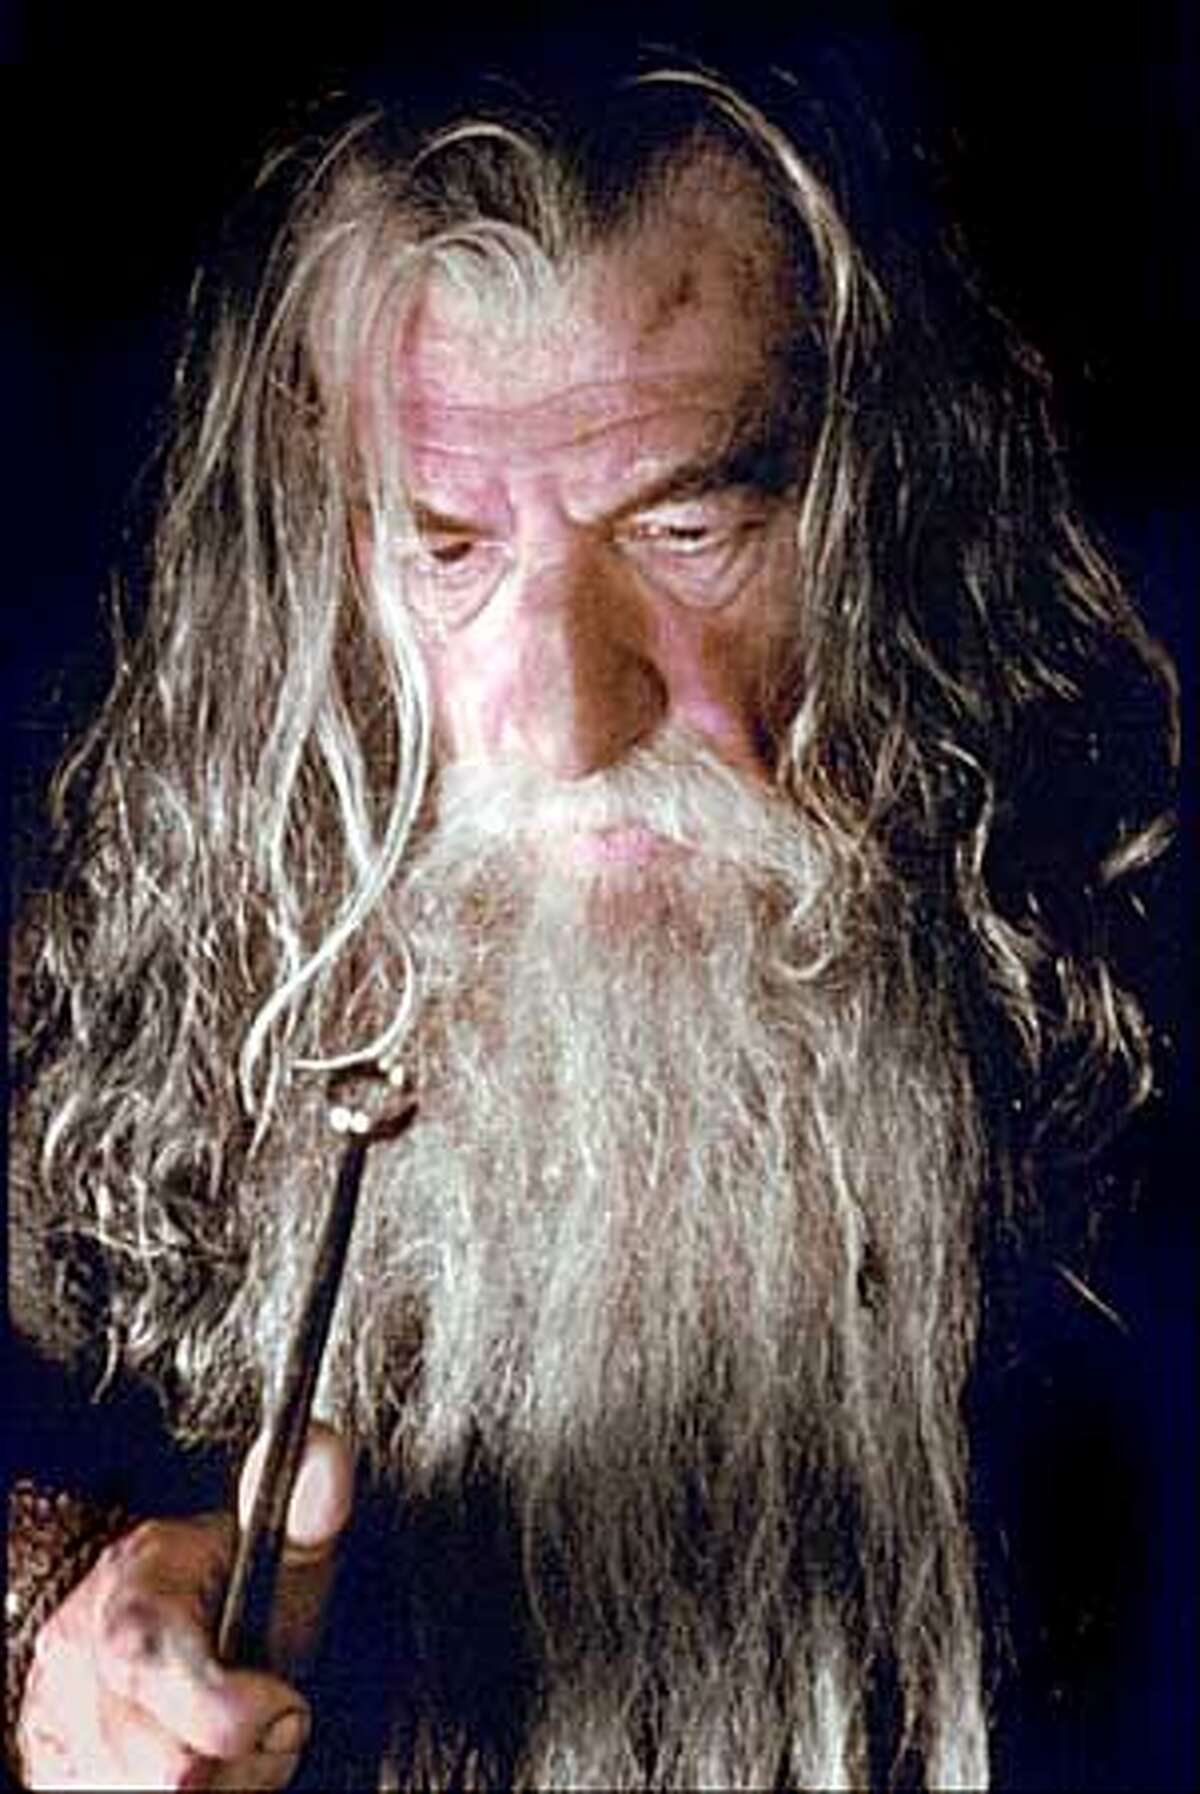 Ian McKellen plays the wizard Gandalf in director Peter Jackson's adaptation of the first book of J.R.R. Tolkien's trilogy